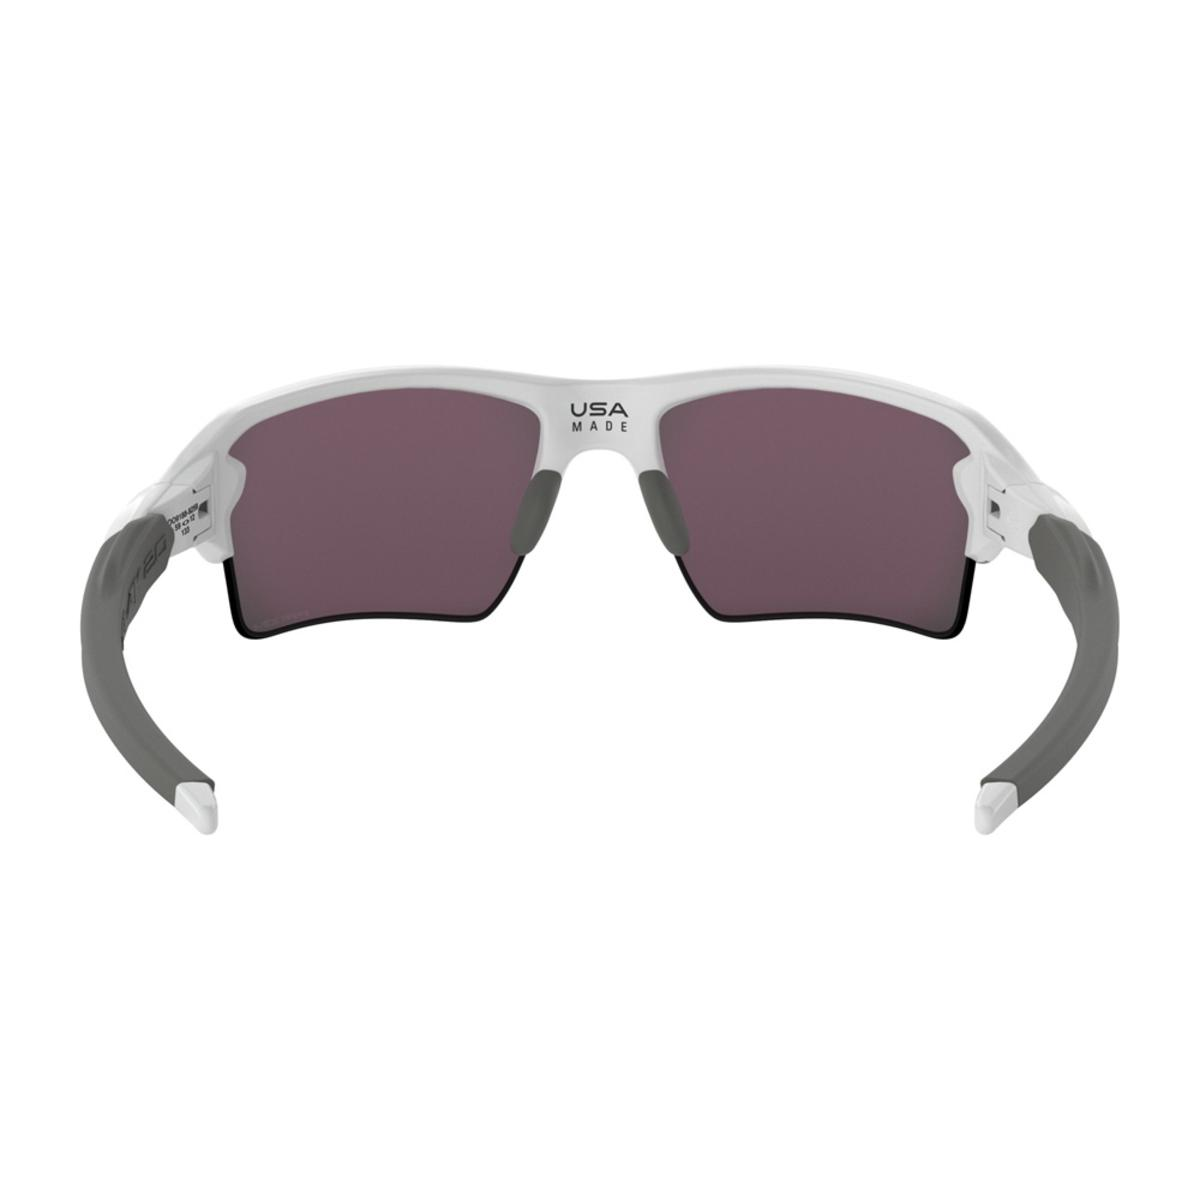 a12eeb0c6f Oakley Flak 2.0 XL Team Colors Polished White Sunglasses w Prizm Jade - The  Warming Store